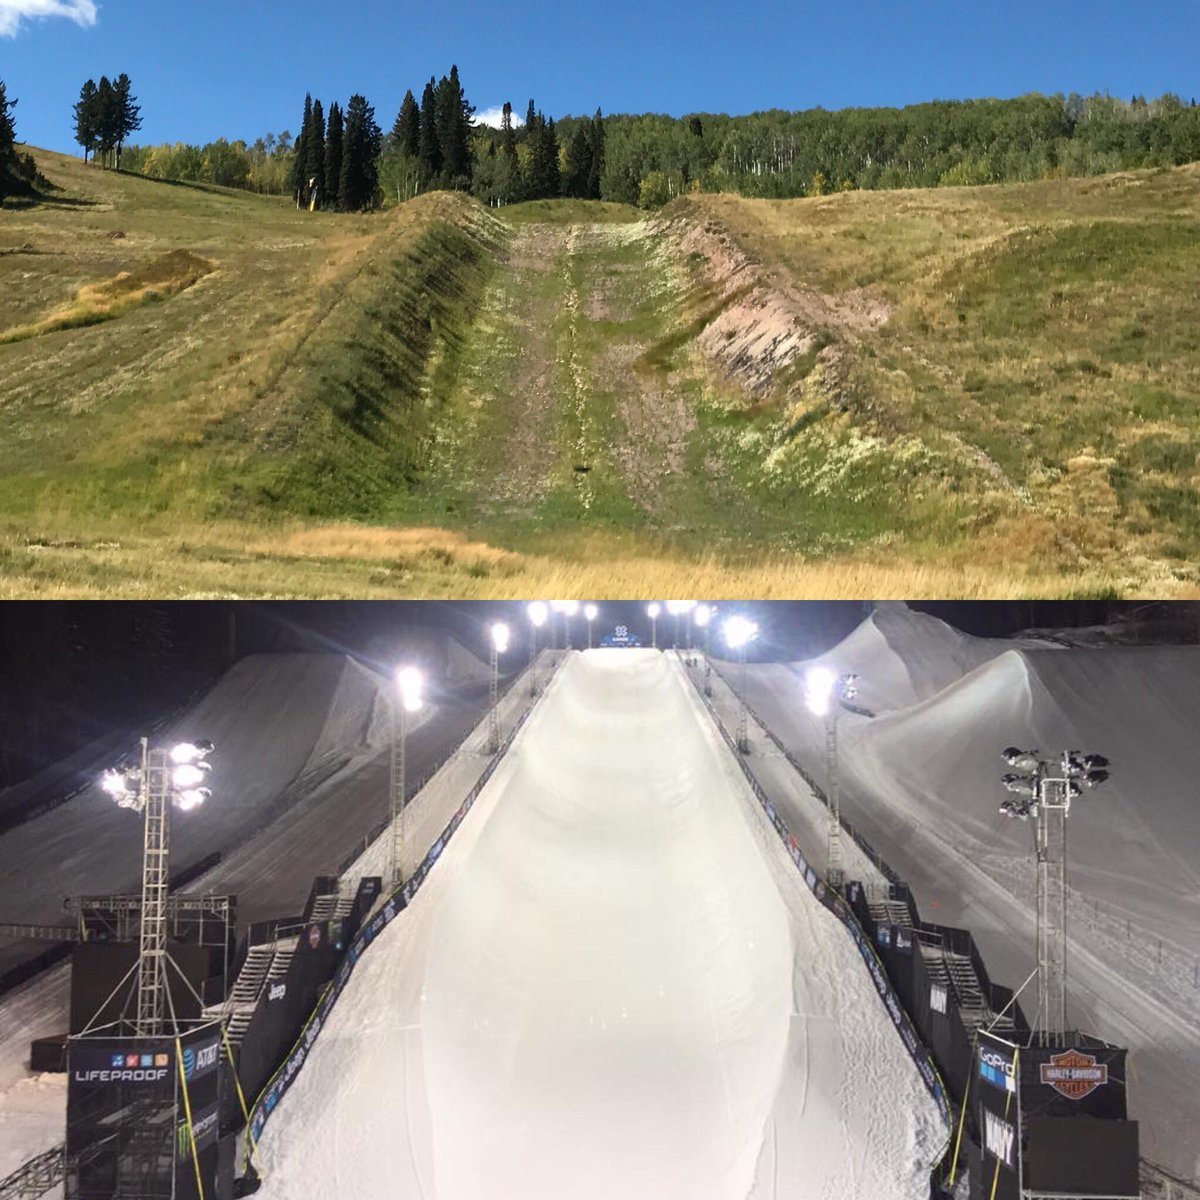 Getting ready for January! The beast will come alive again!#scrimjunkies #xgames #aspen #colorado #espn #eventlife<br>http://pic.twitter.com/srRqnAFvcZ